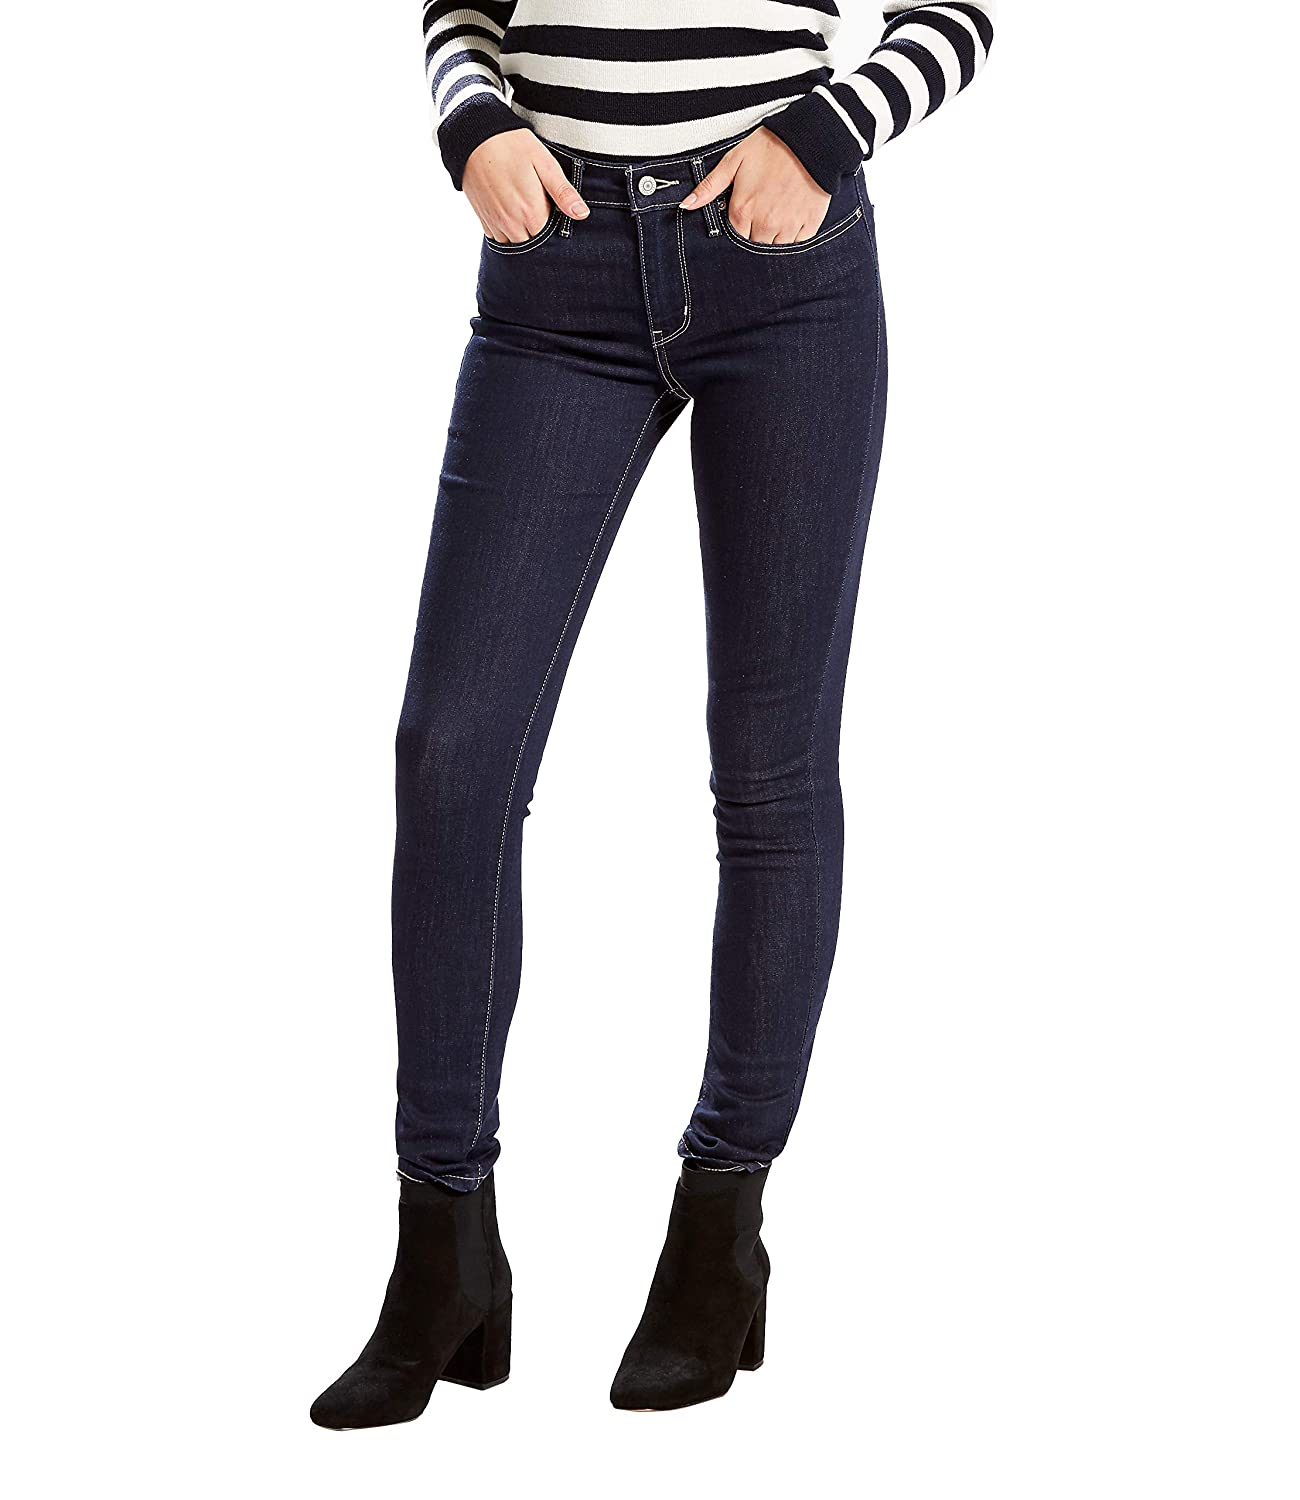 2ac10612f728a7 Levi's Women's Slimming Skinny Jean, Scenic Drive (89% Cotton, 9%  Polyester, 2% Elastane), 34Wx30L: Amazon.co.uk: Clothing